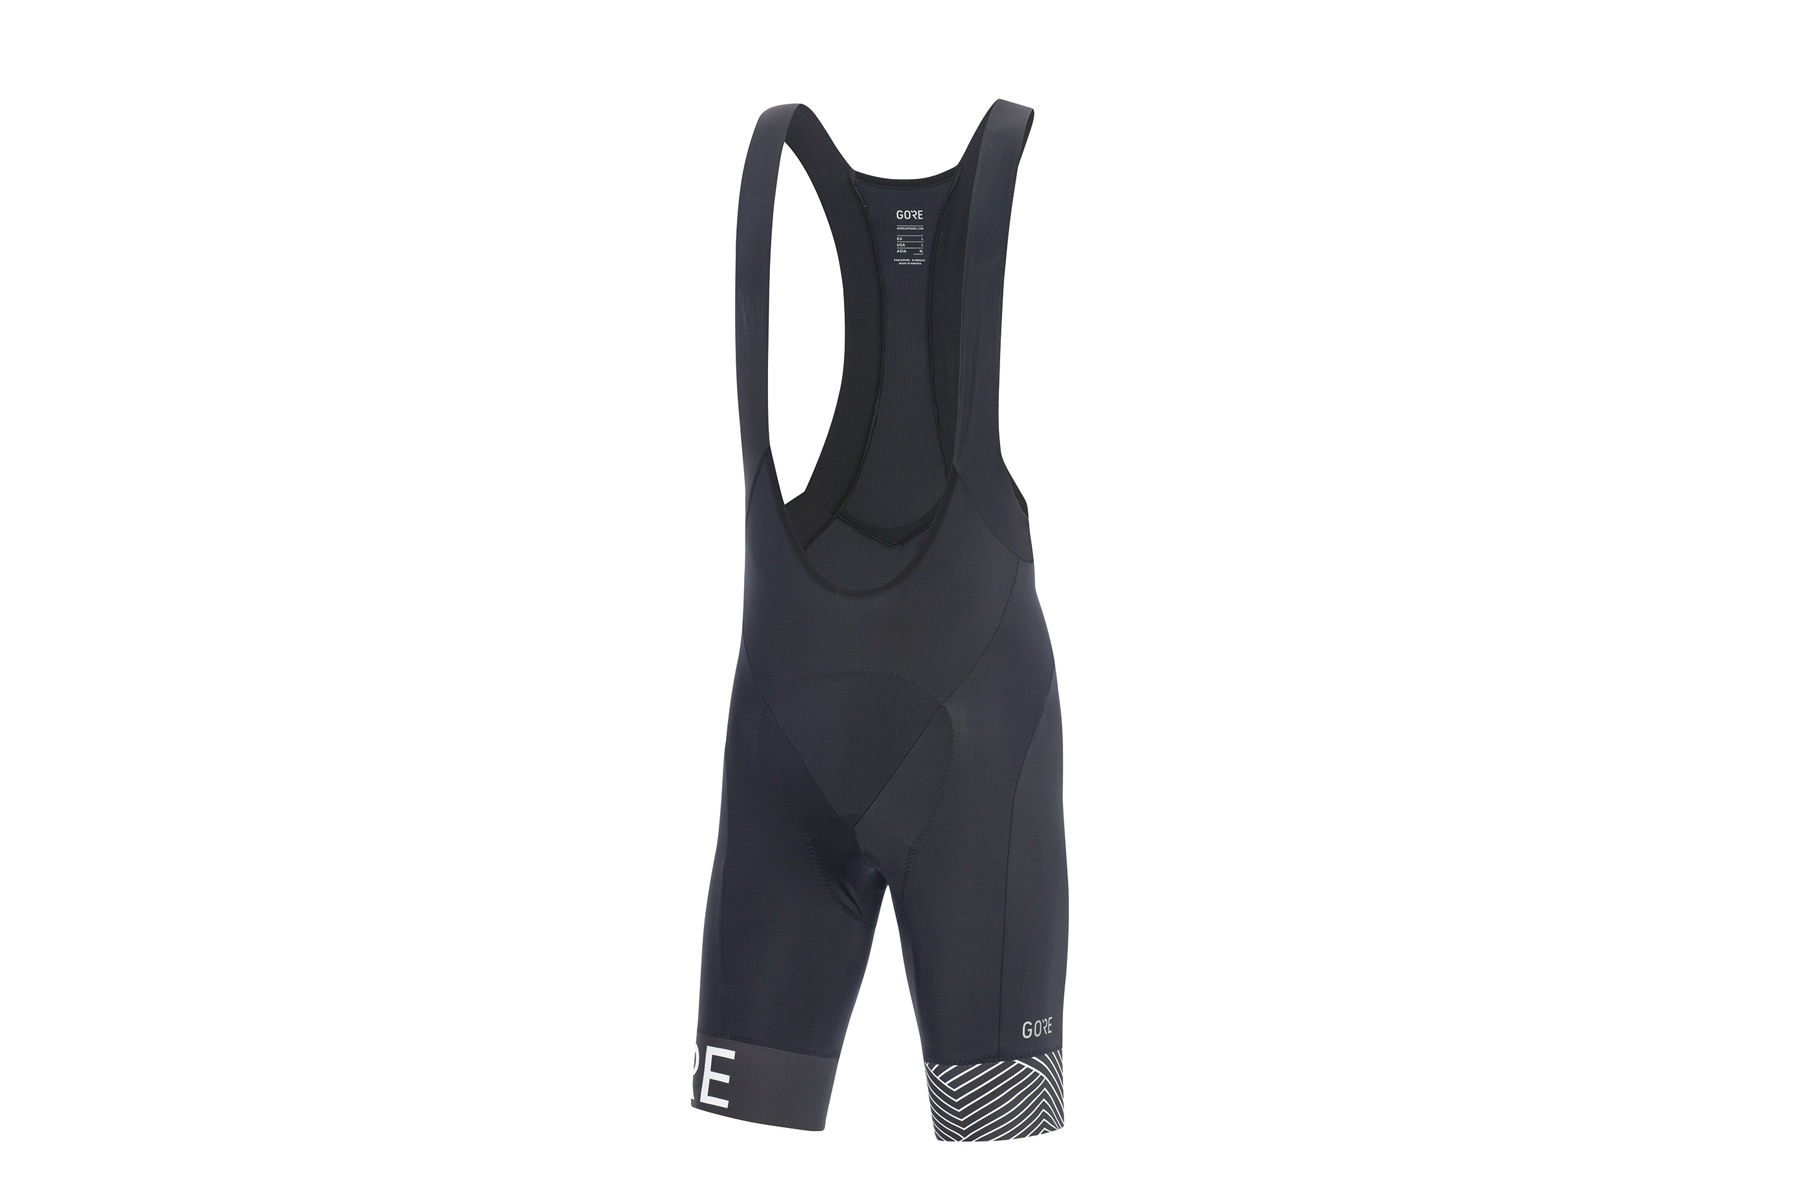 GORE WEAR C5 Optiline Bib Shorts Men black//white  2019 Träger-Hose schwarz